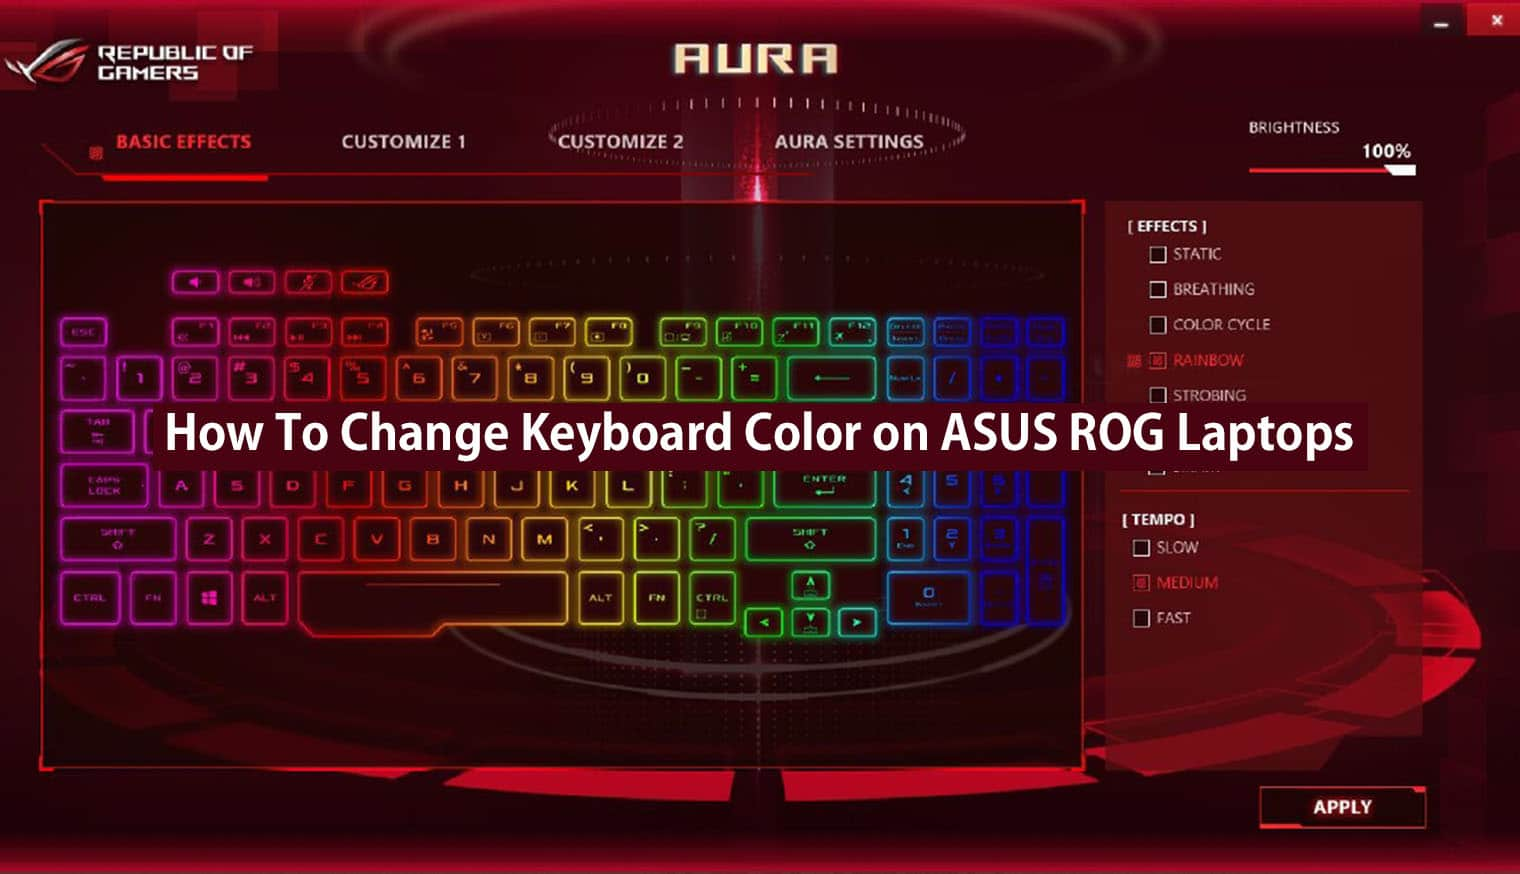 How To Change Keyboard Color On Asus Rog Laptops